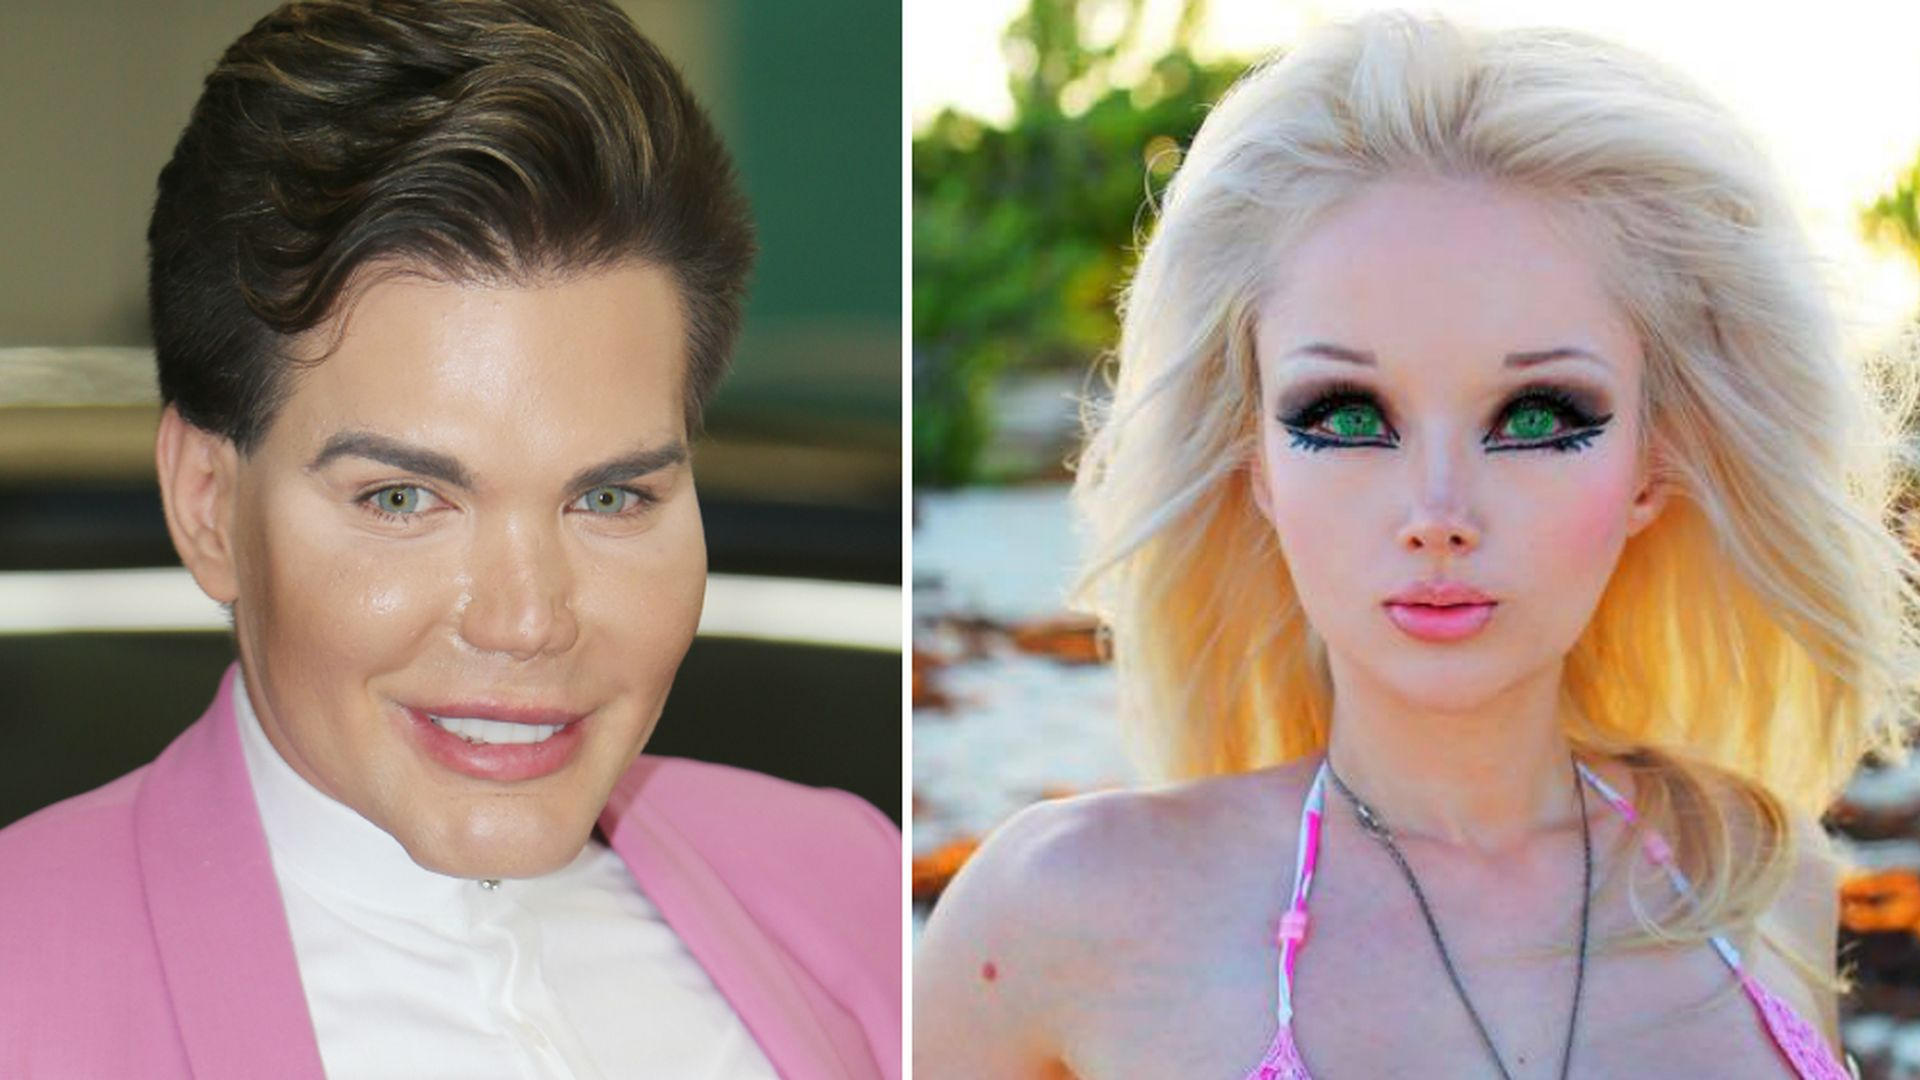 the real ken and barbie Anastasia reskoss, 20, and quentin dehar, 23, have splurged an eye-popping $322,728 on almost every plastic surgery imaginable so they can look like their idols, barbie and ken.